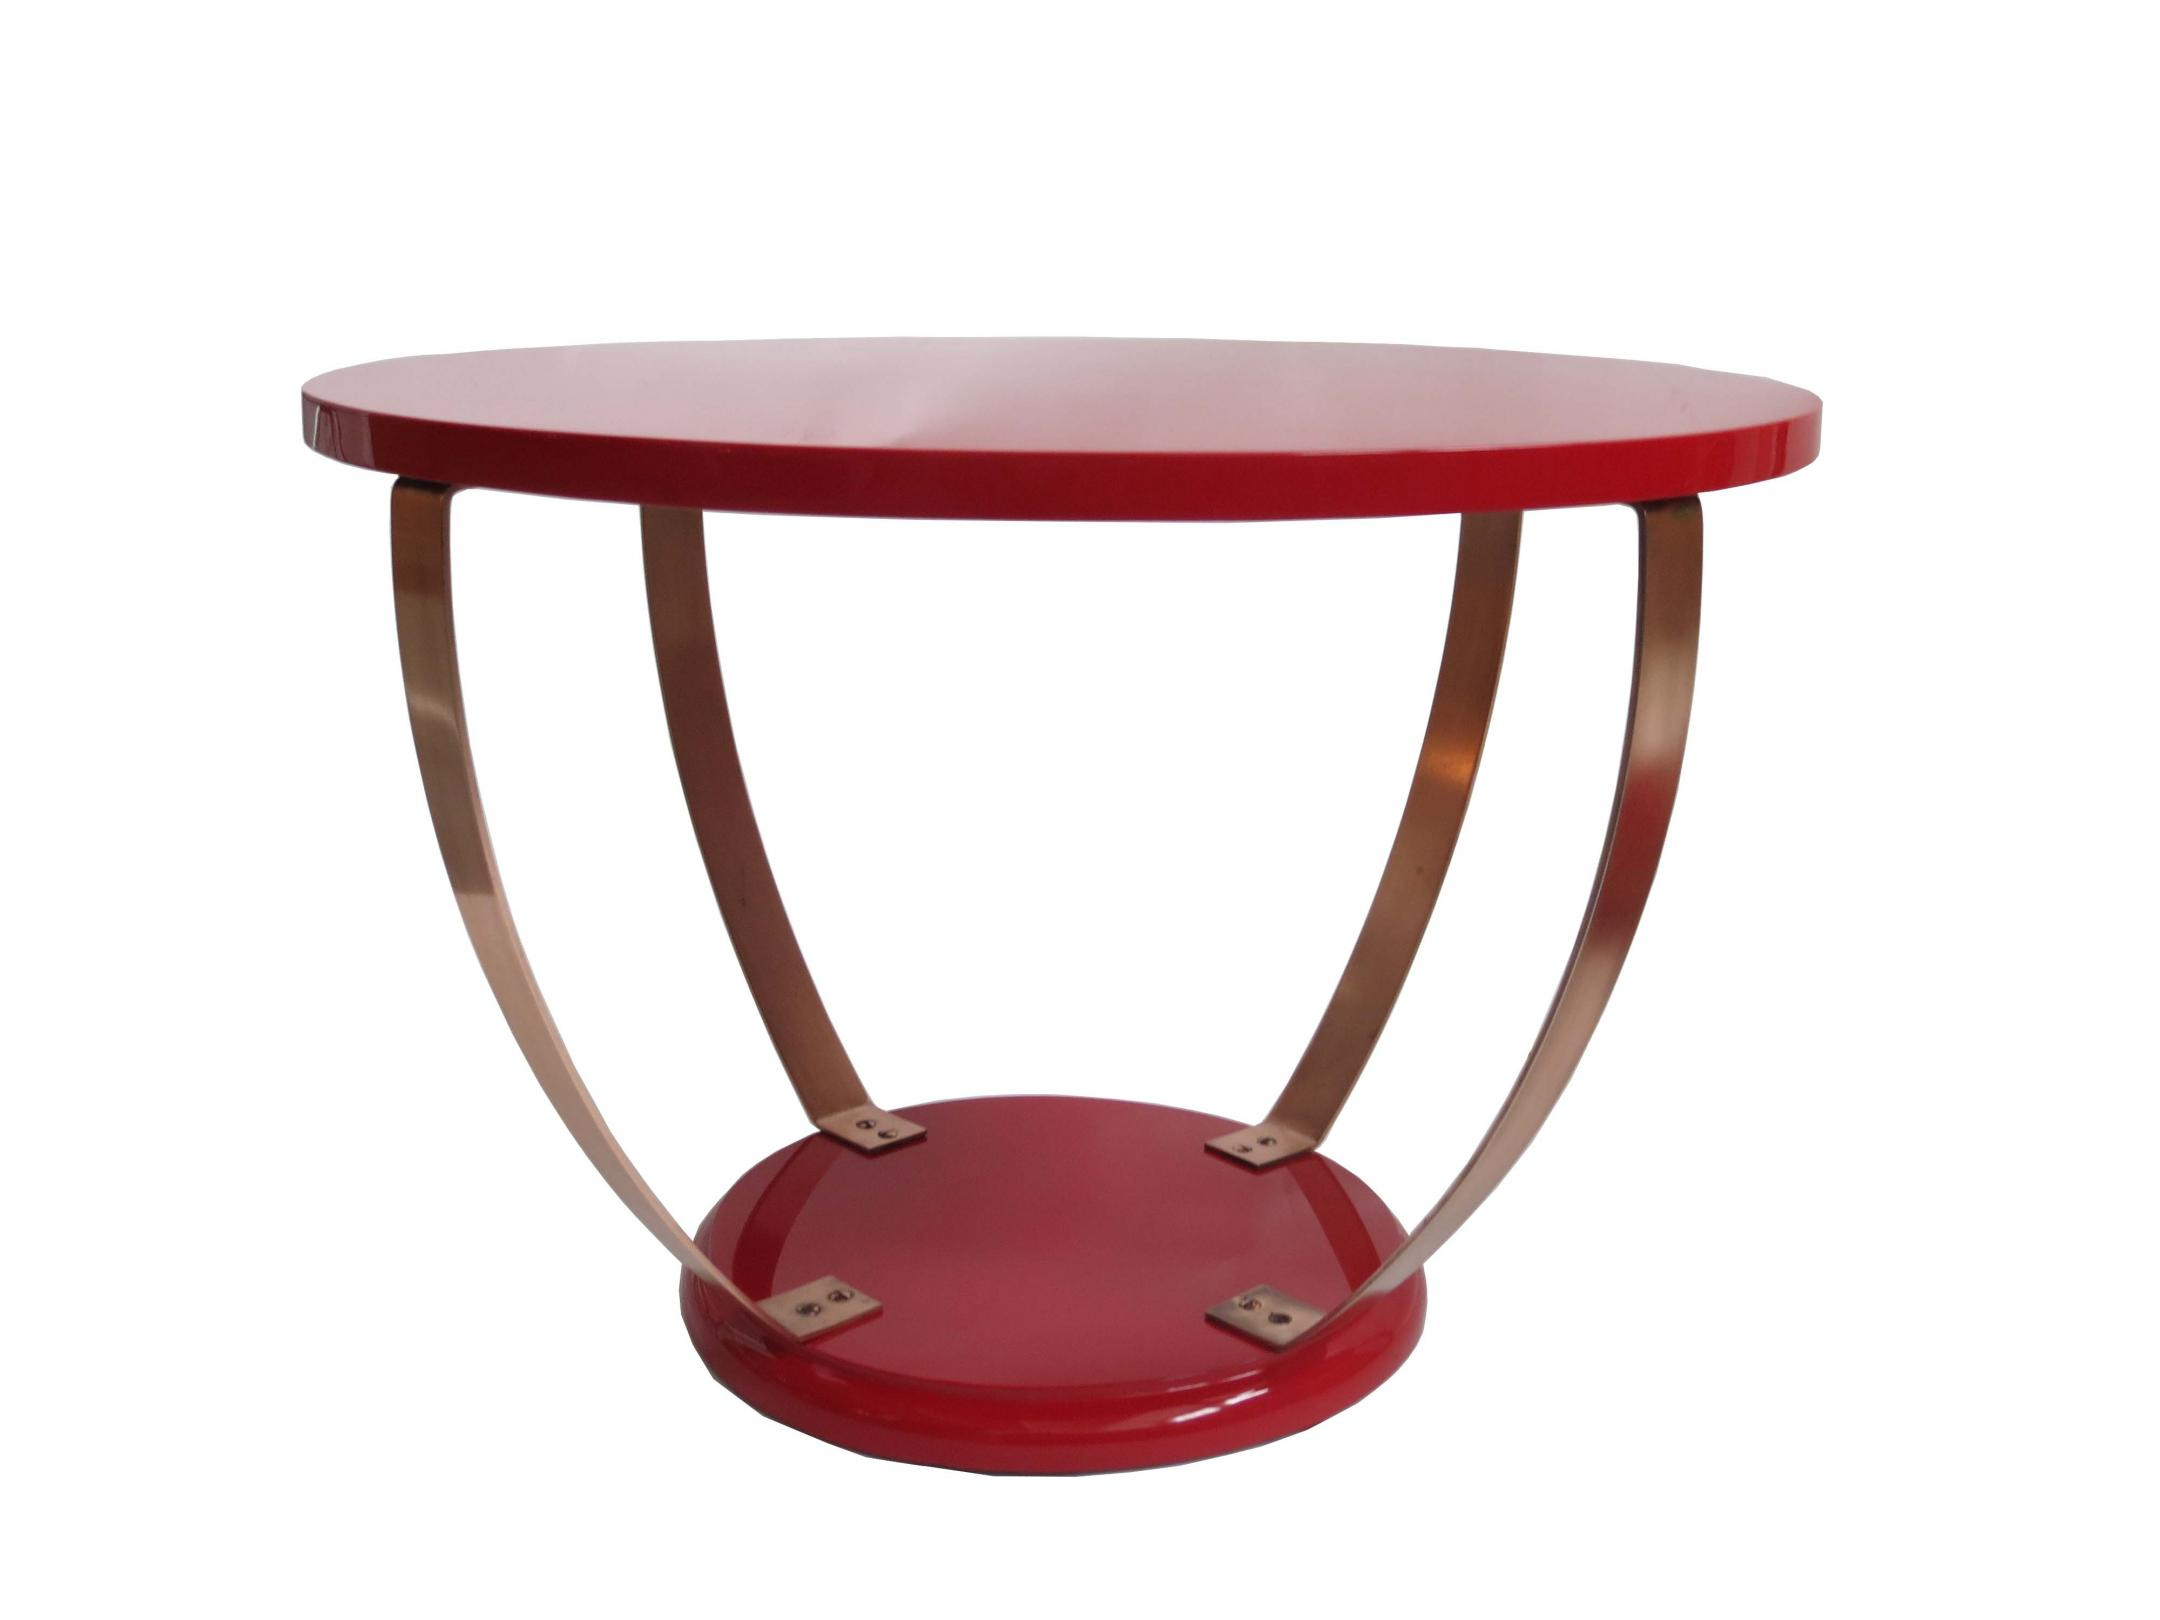 Red lacquer american art deco coffee table modernism red lacquer american art deco coffee table geotapseo Images